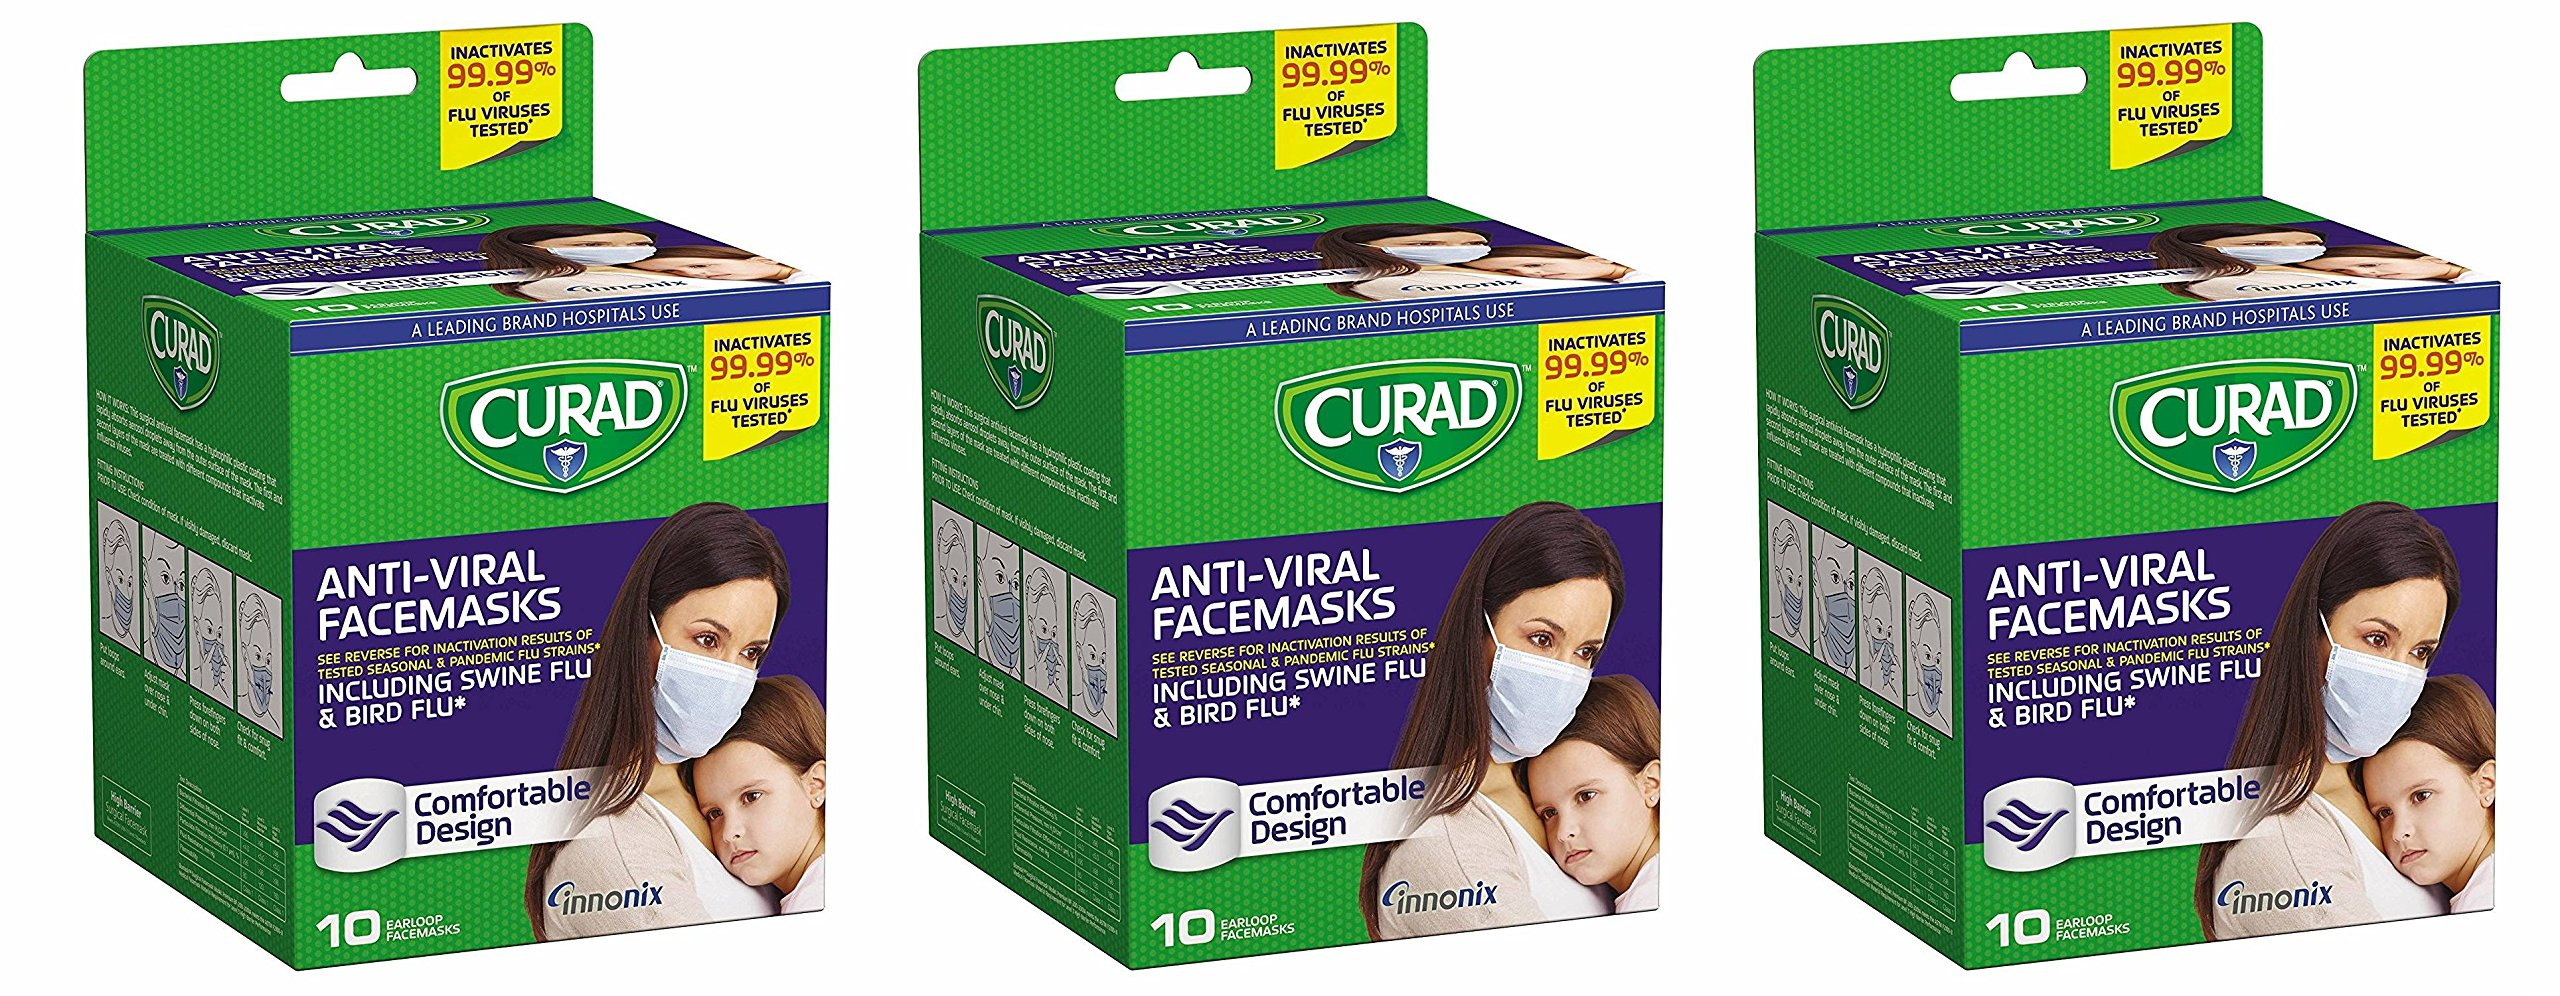 Curad Antiviral sJXKxR Face Mask, 10 Count (Pack of 3)